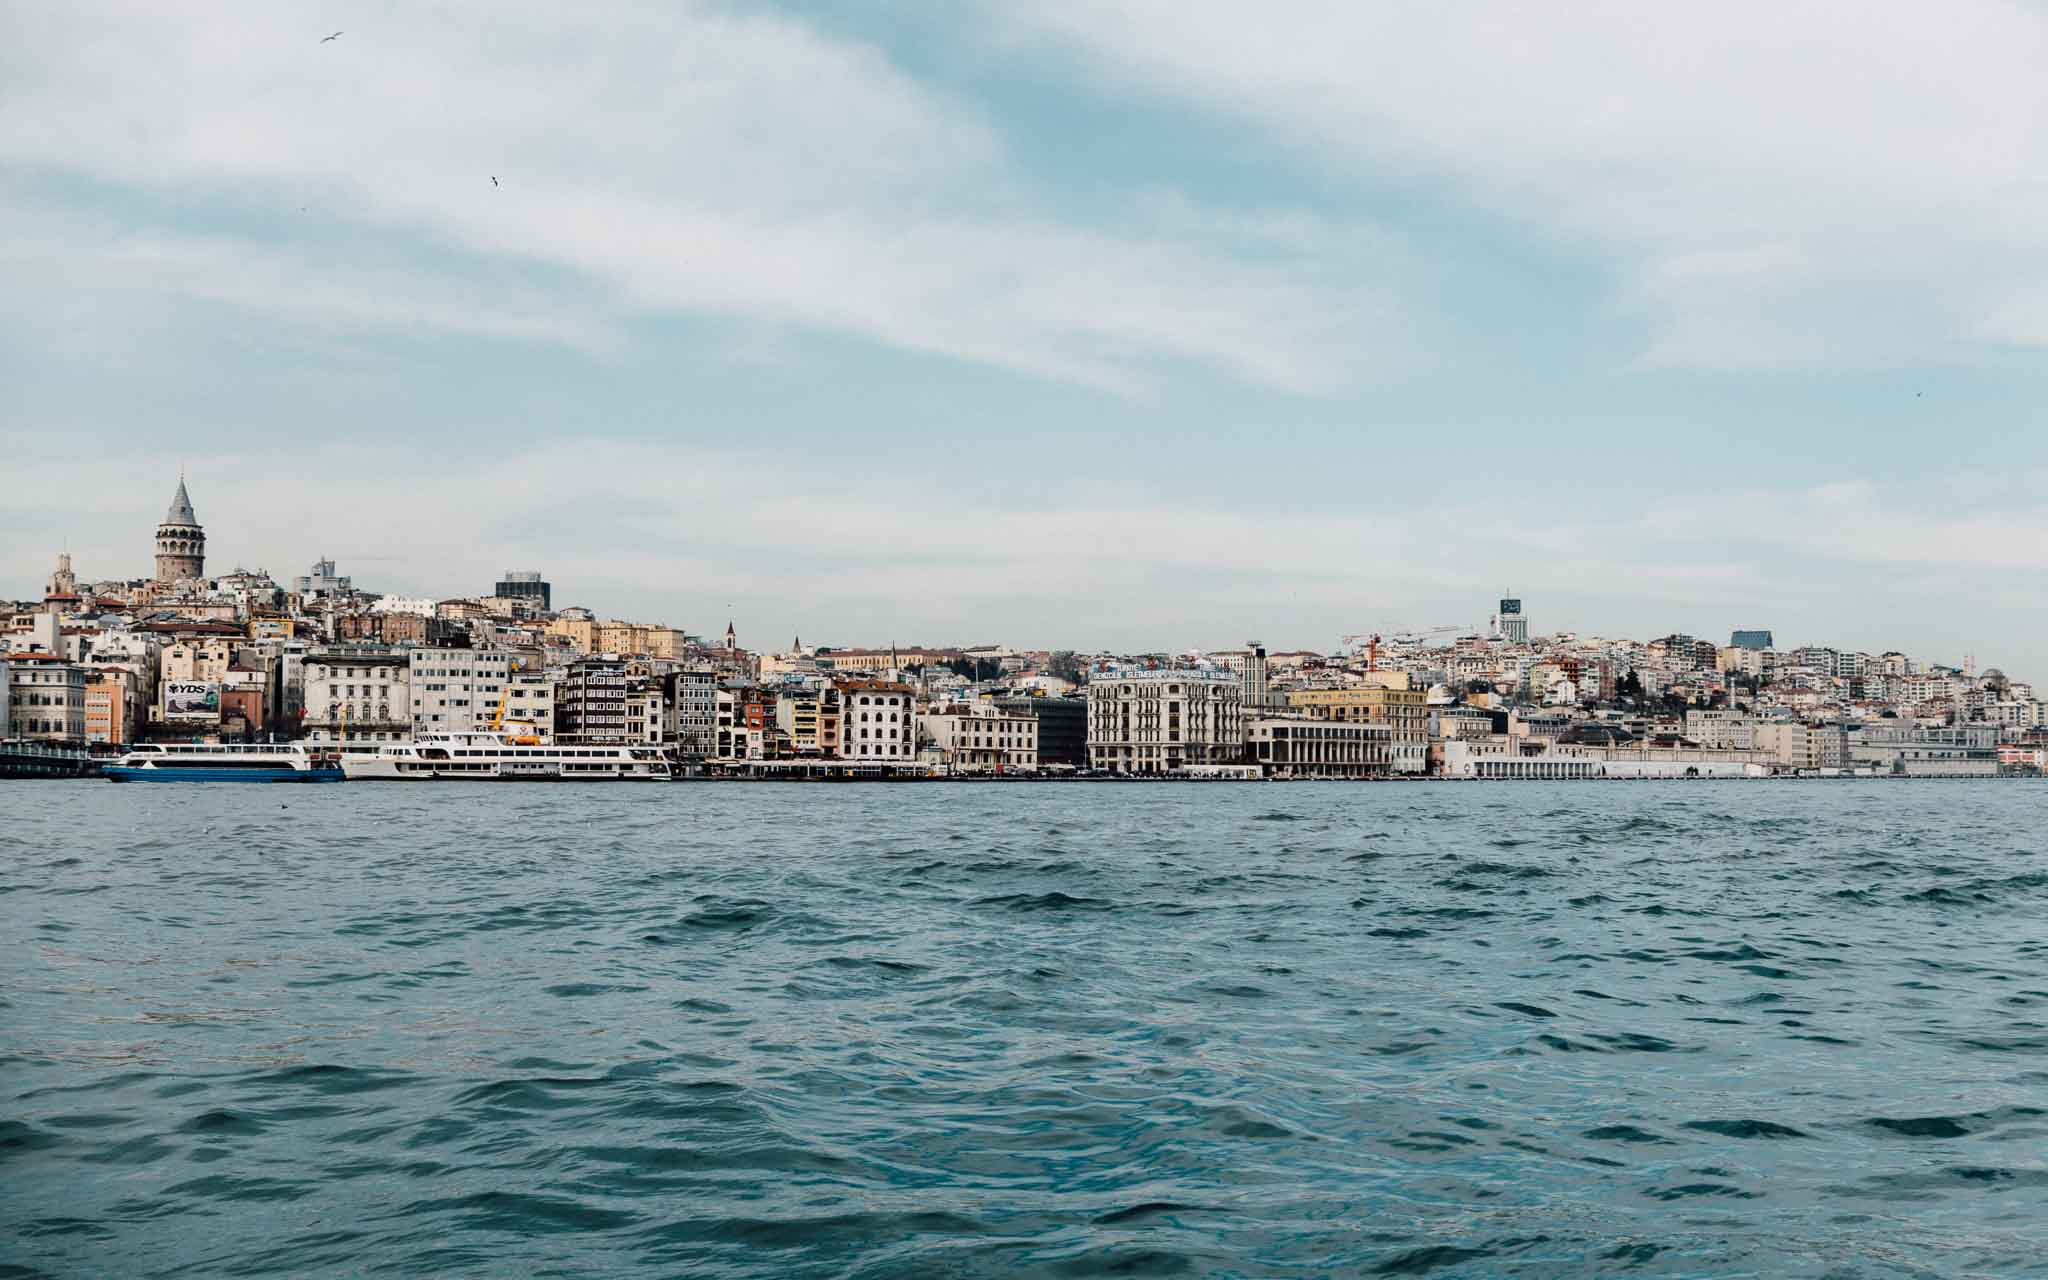 Calming photo of Istanbul taken from the Bosphorus Strait with muted colors